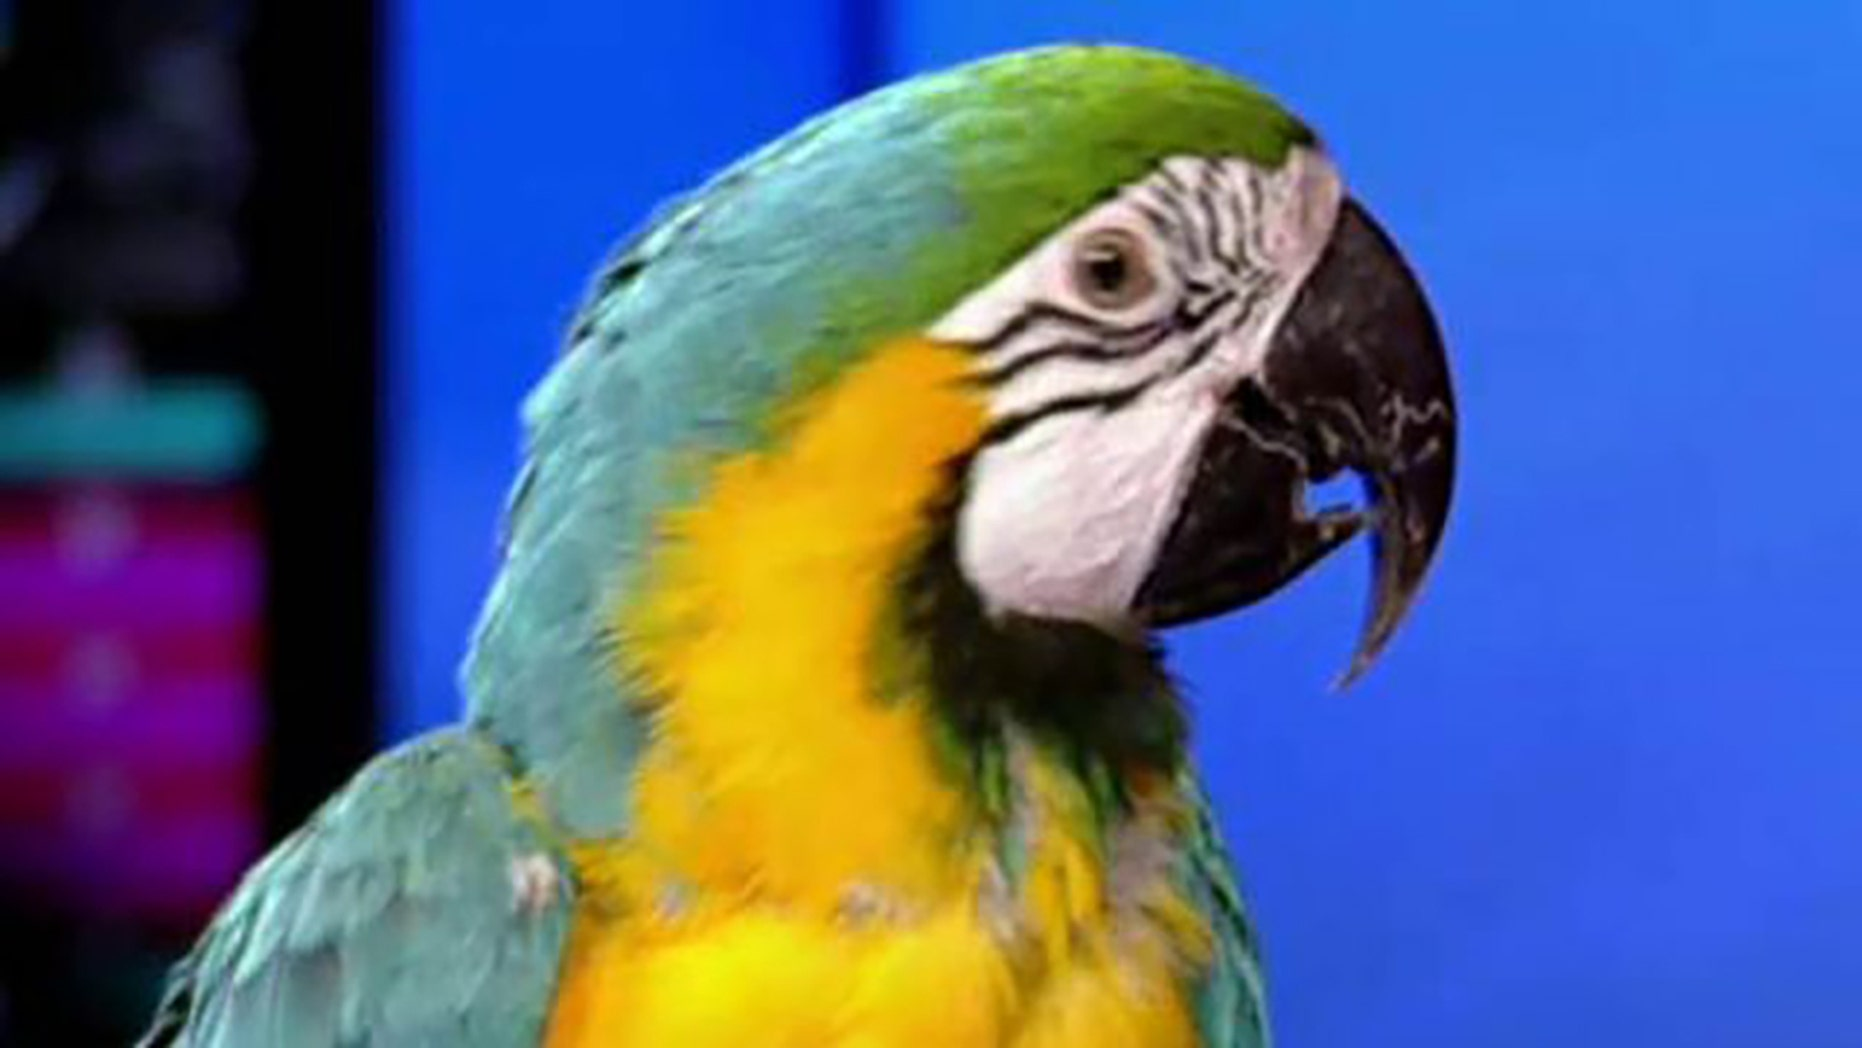 More than 600 birds, including Macaws, were removed from an Ohio home.